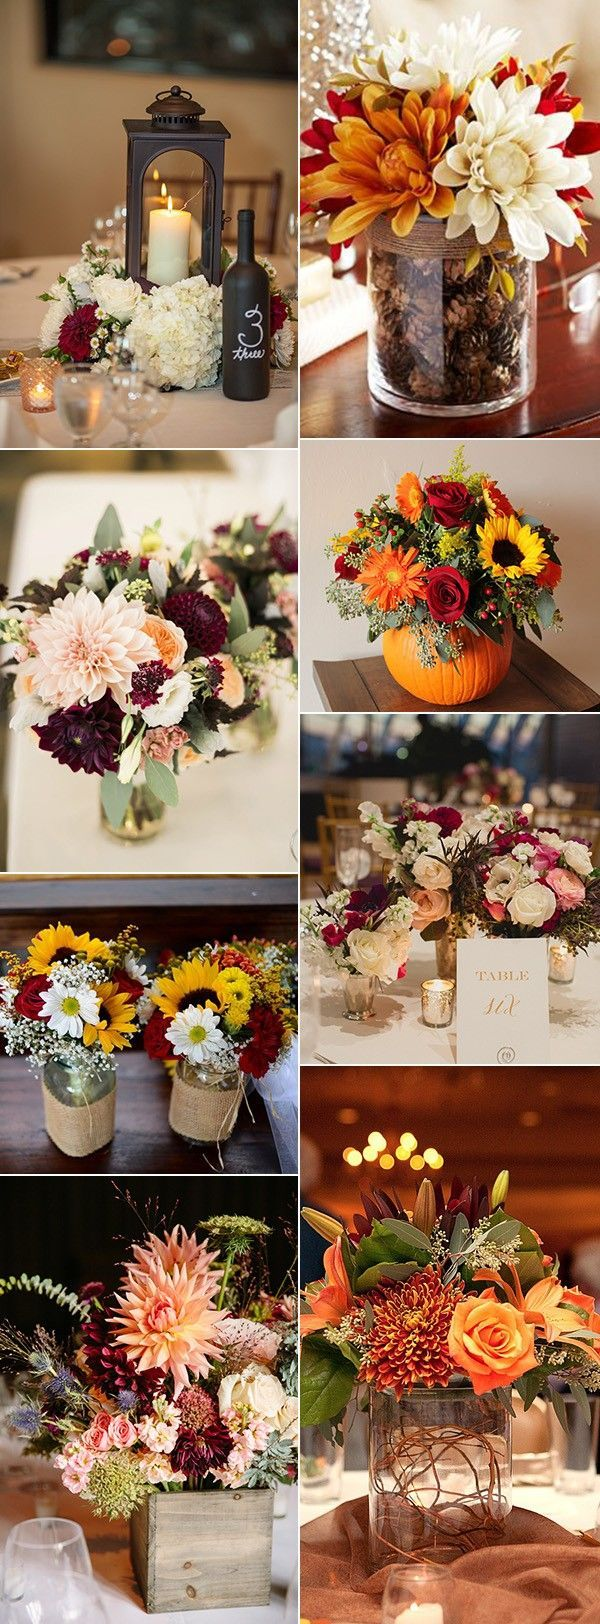 country rustic fall wedding centerpiece ideas #rustic_decor_centerpieces